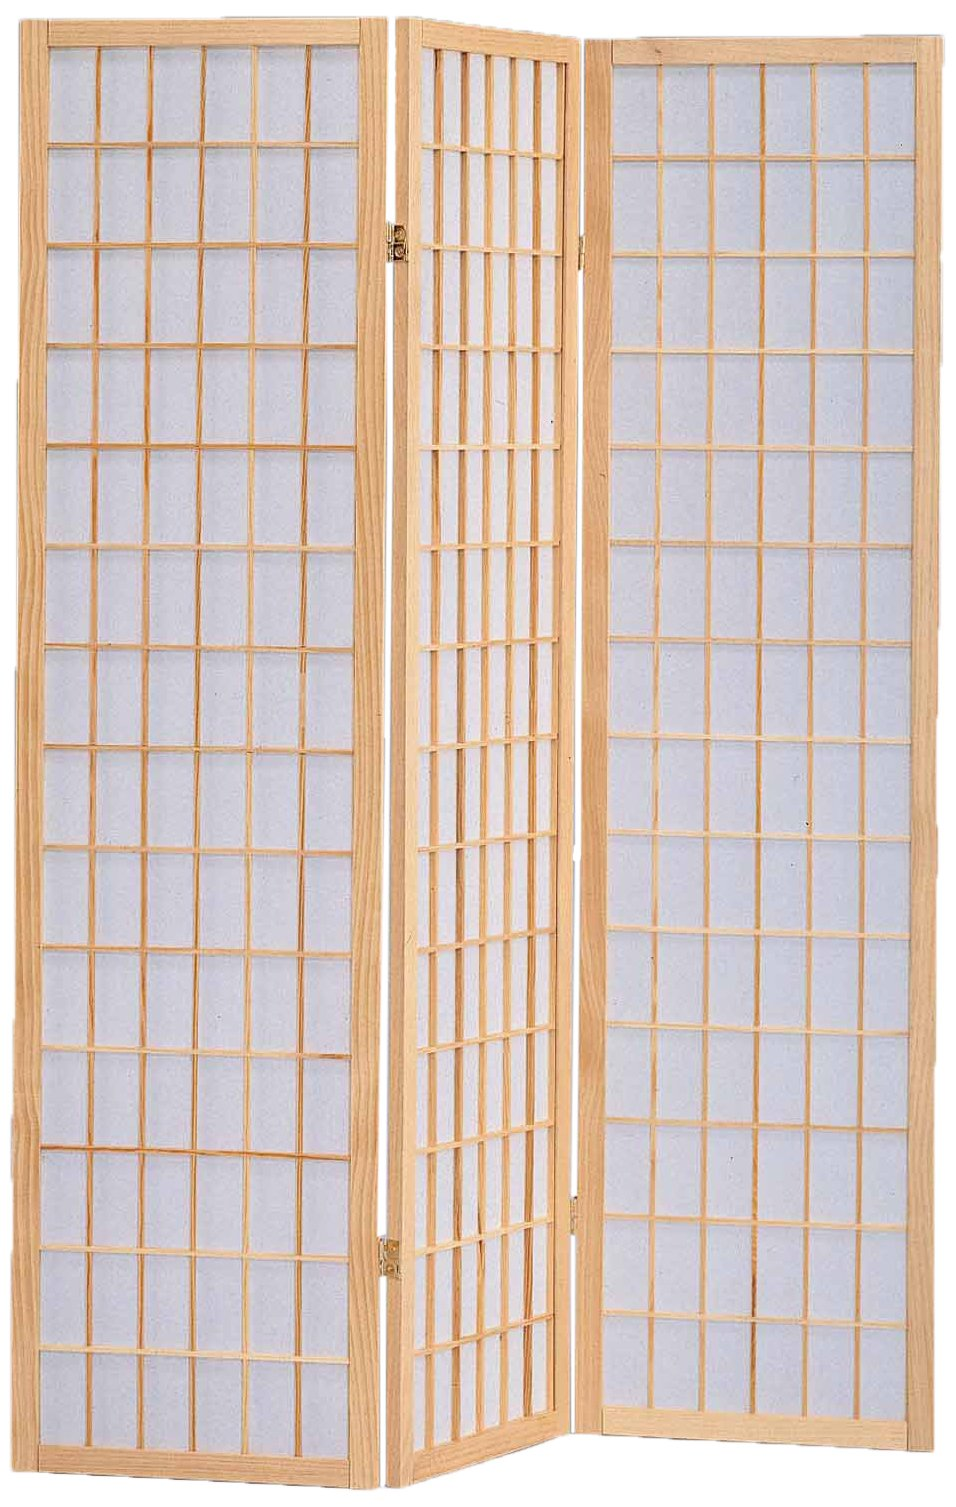 Milton Greens Stars 7034NA 3-Panel Sam Room Divider, Natural by Milton Greens Stars